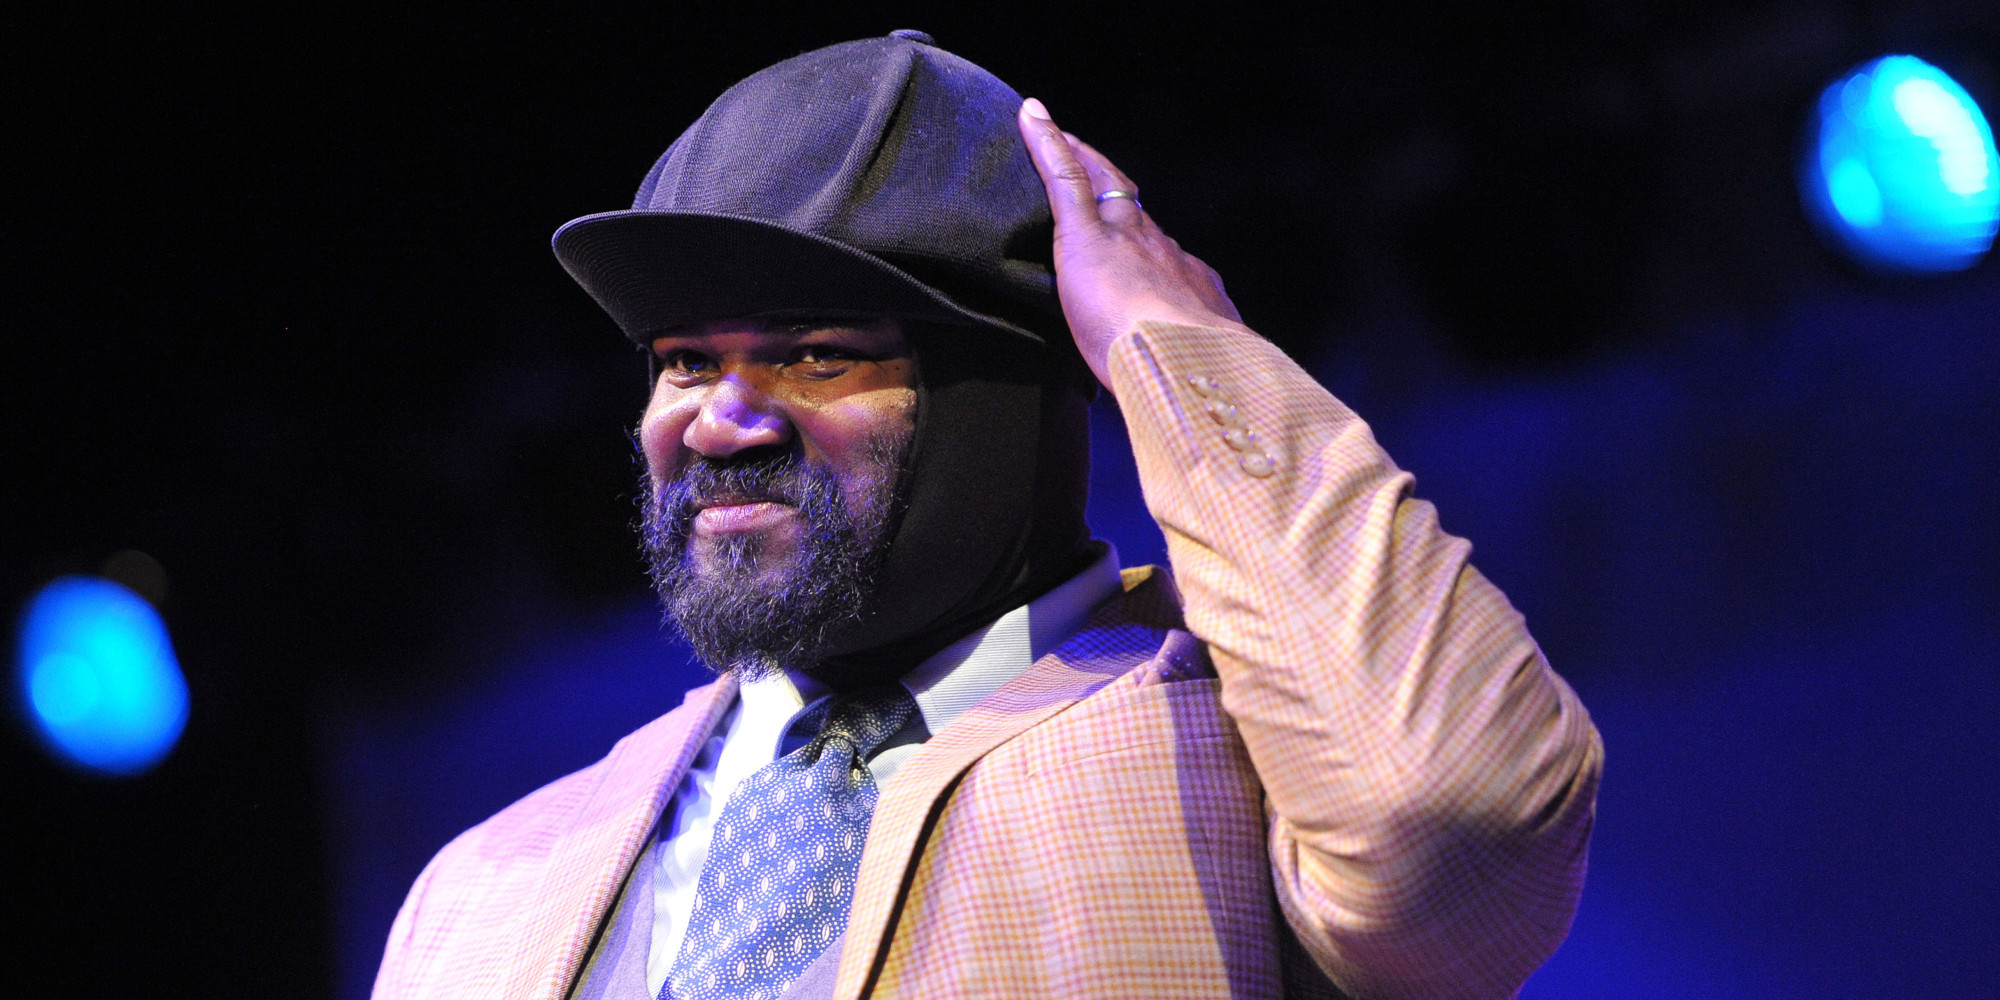 Jazz sensation gregory porter remembers friend george duke - Gregory porter liquid spirit album download ...